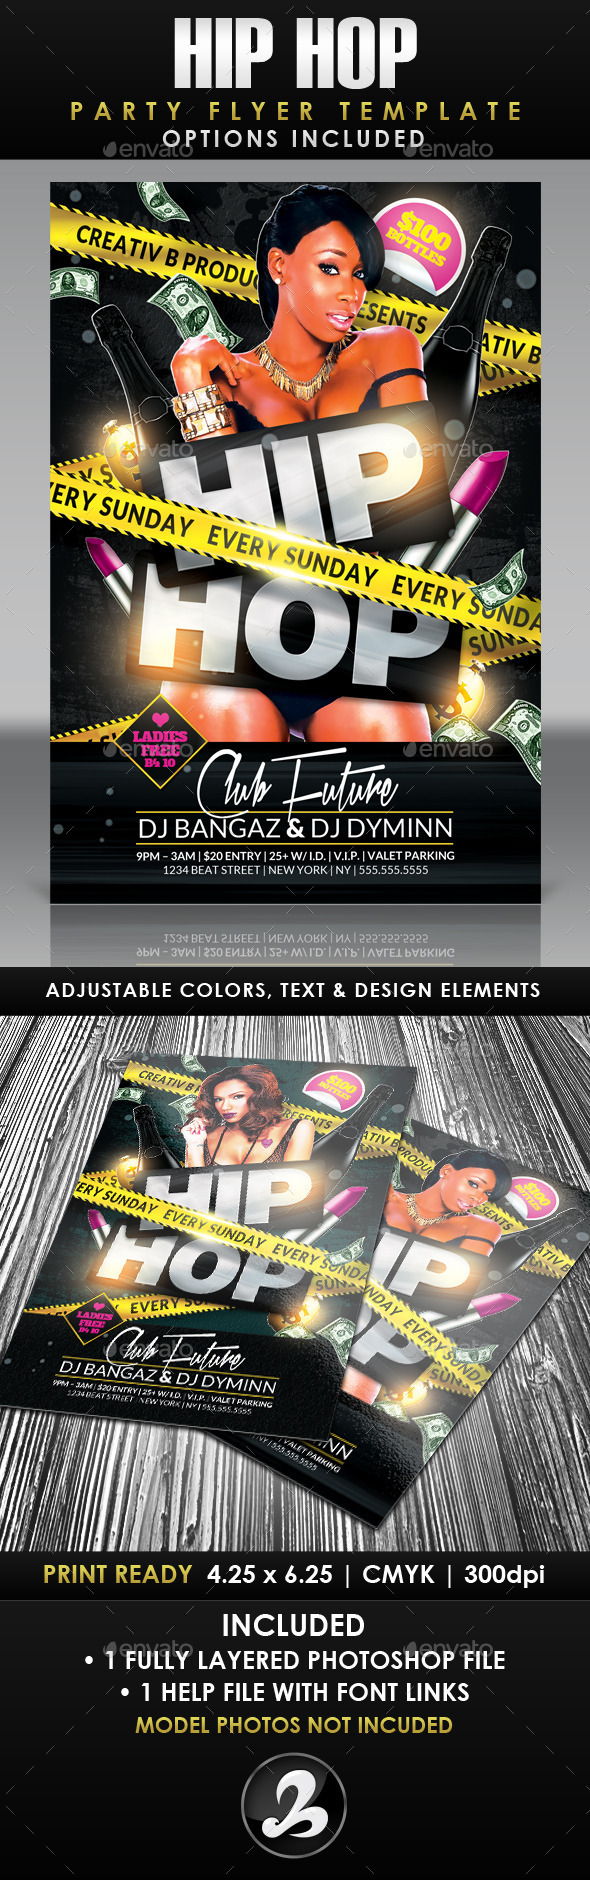 GraphicRiver Hip Hop Party Flyer Template 2 10470265